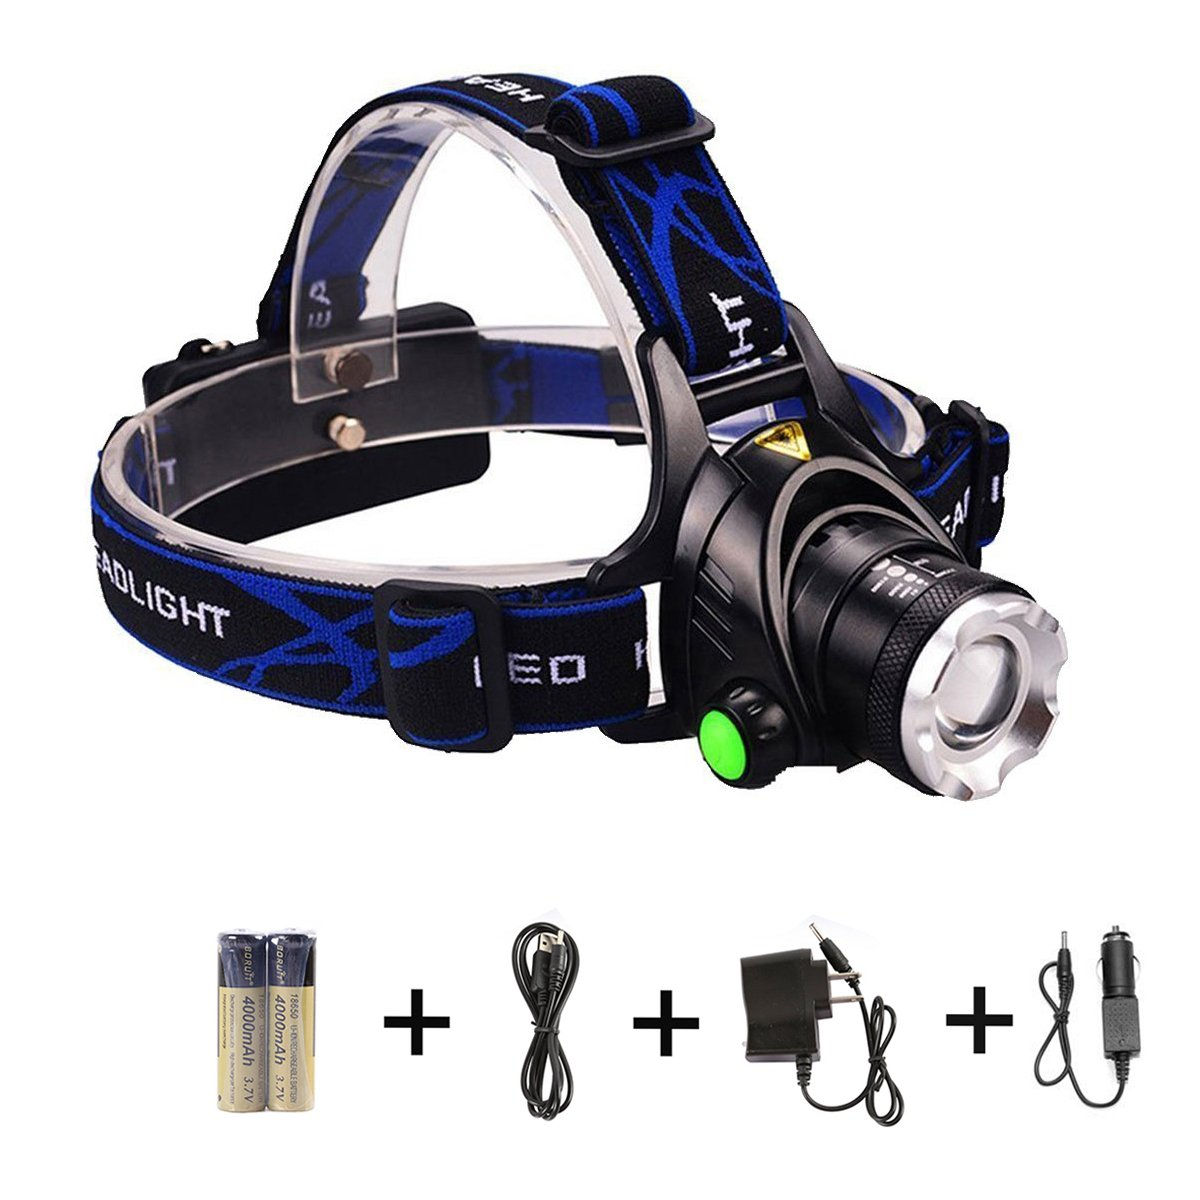 LED Headlamp, szwintec CREE XM-L T6 LED 1200 Lumens, Flashlight with Zoomable 3 Modes, Hands-Free Headlight, Battery Powered Helmet Light for Camping, Running, Hiking, Reading